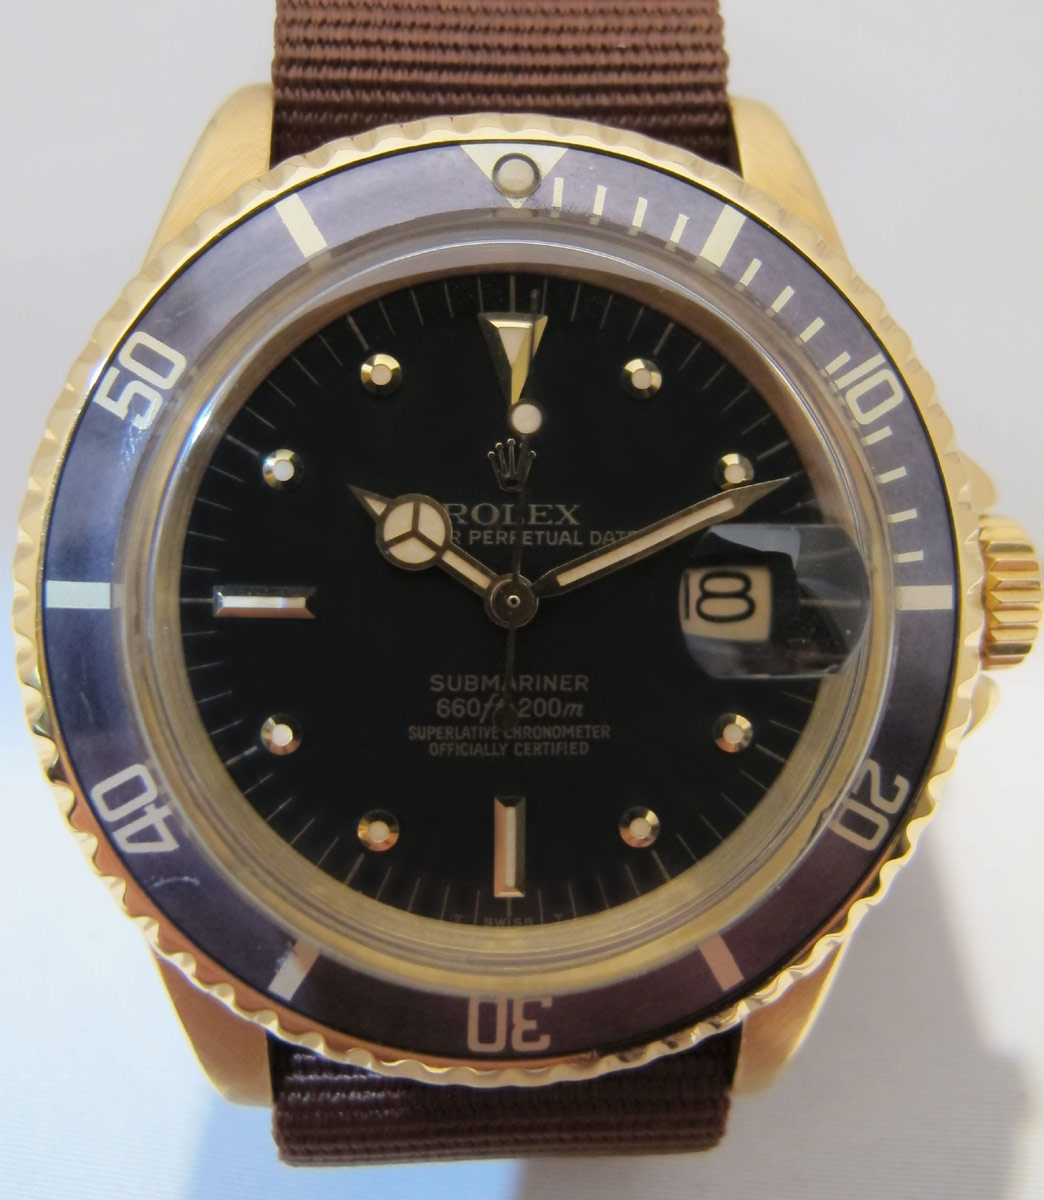 ROLEX Submariner Date 1680 Or -